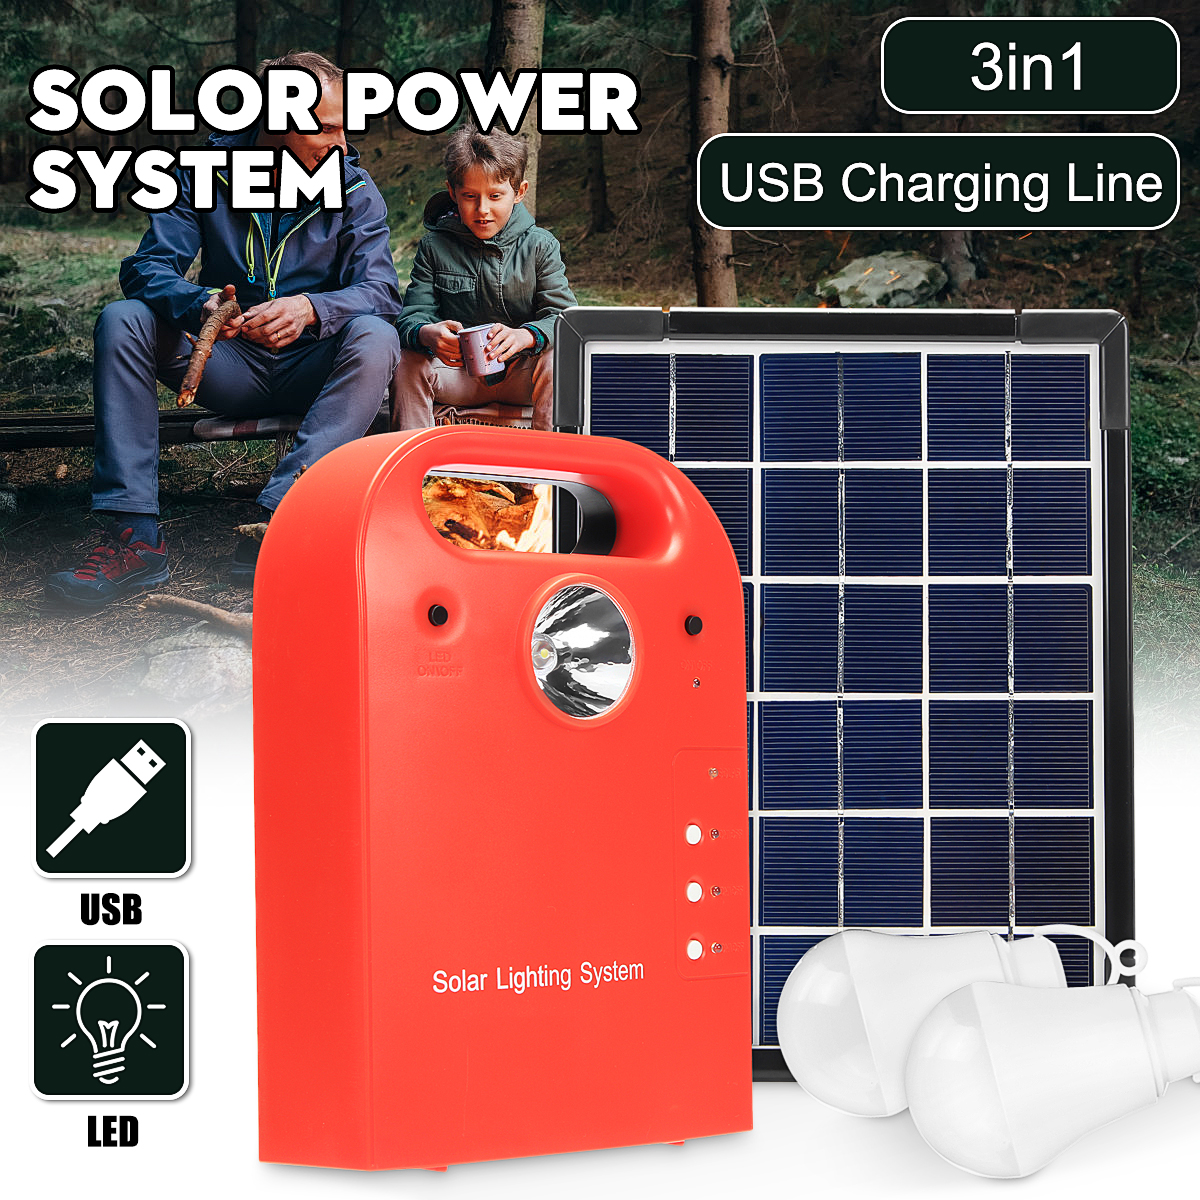 Portable Solar Panel Powered System Generator with 2 LED Light Bulbs Multi-functional Emergency Light Source for Home Camping Travel Outdoor